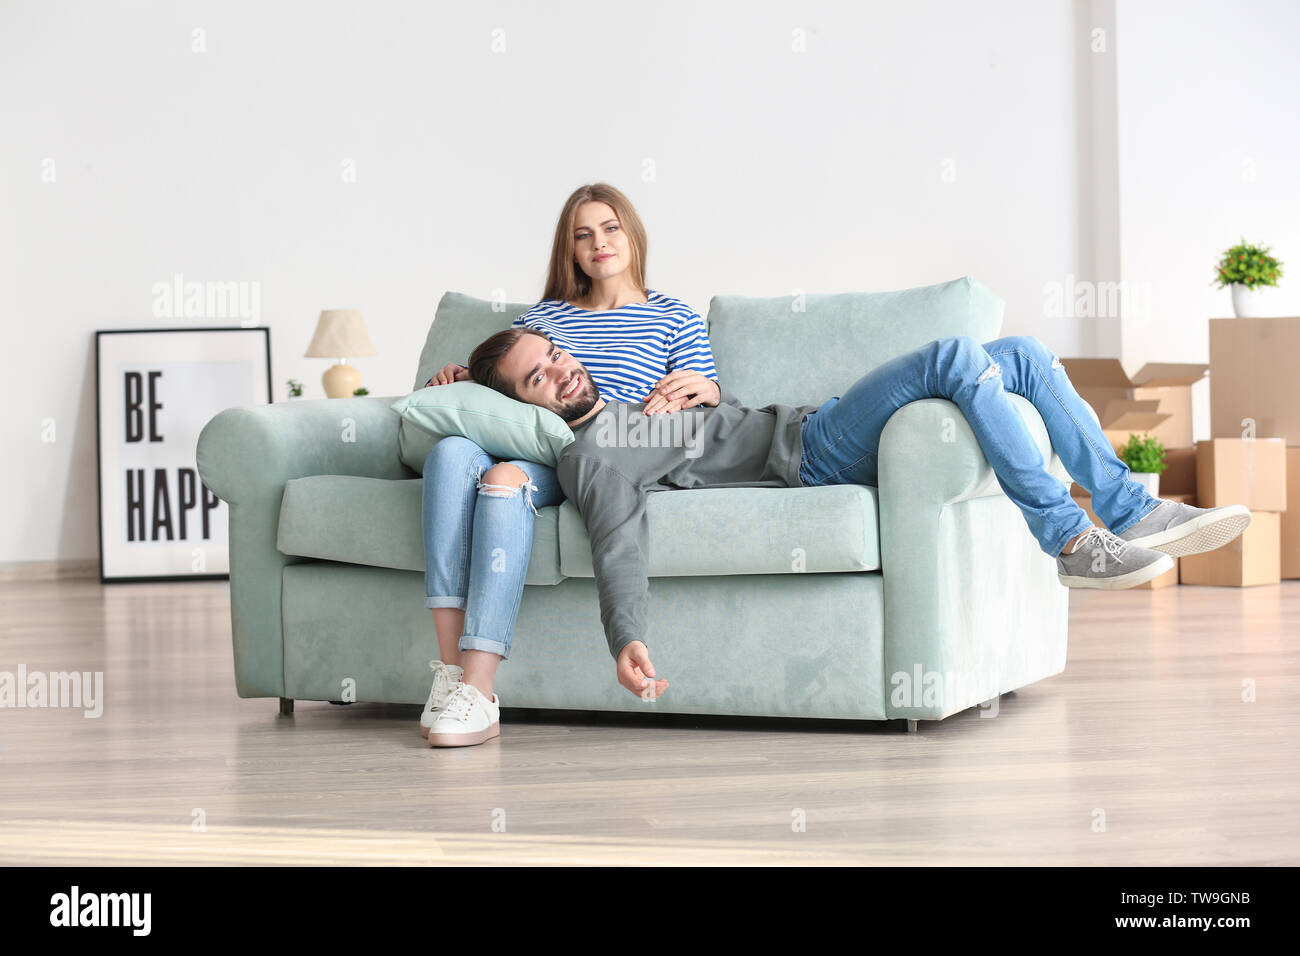 Young couple resting on sofa after moving to new home - Stock Image